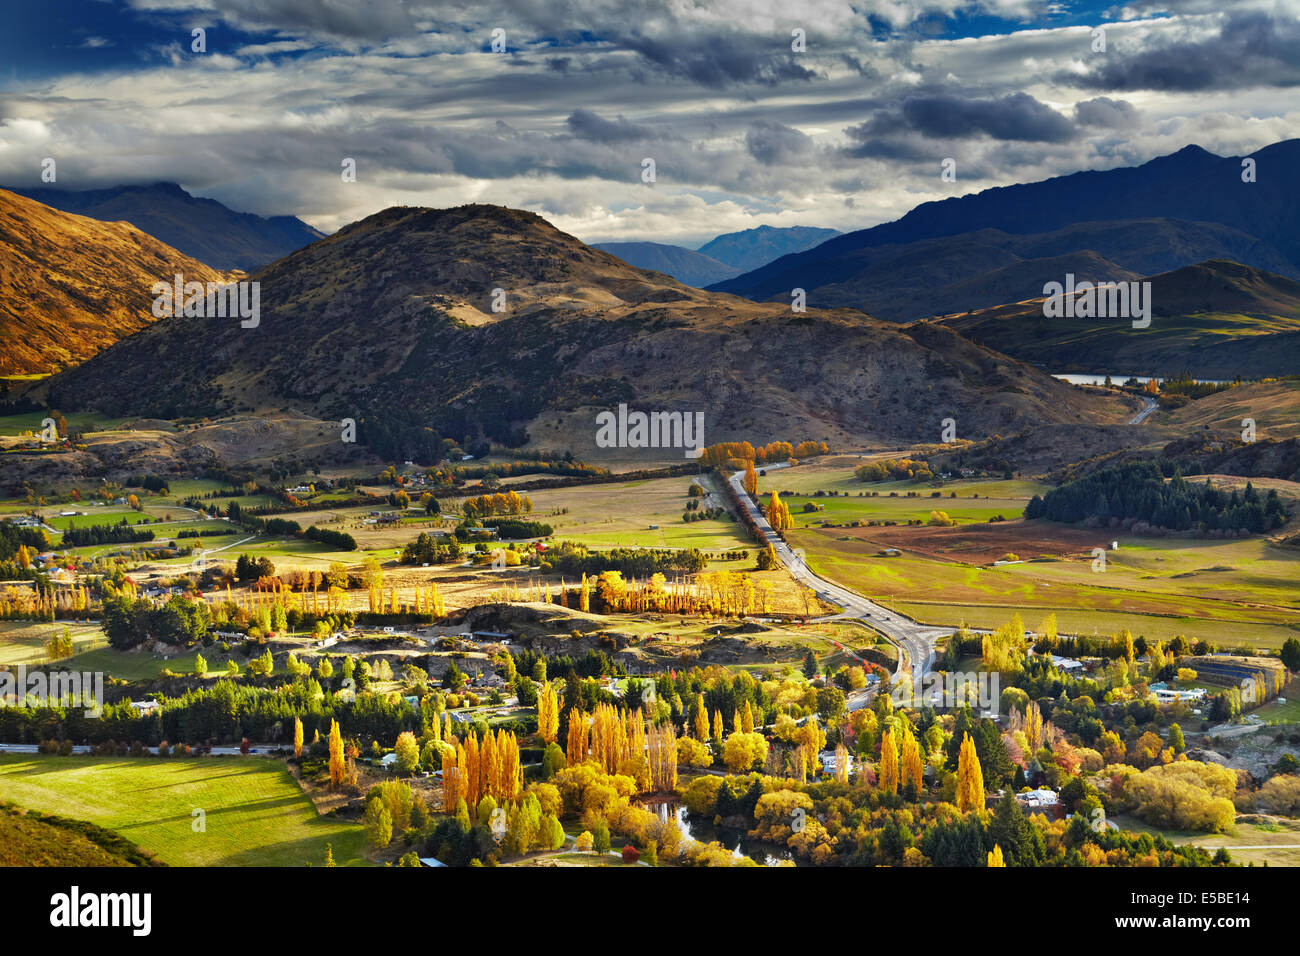 Mountain landscape, near Queenstown, New Zealand - Stock Image